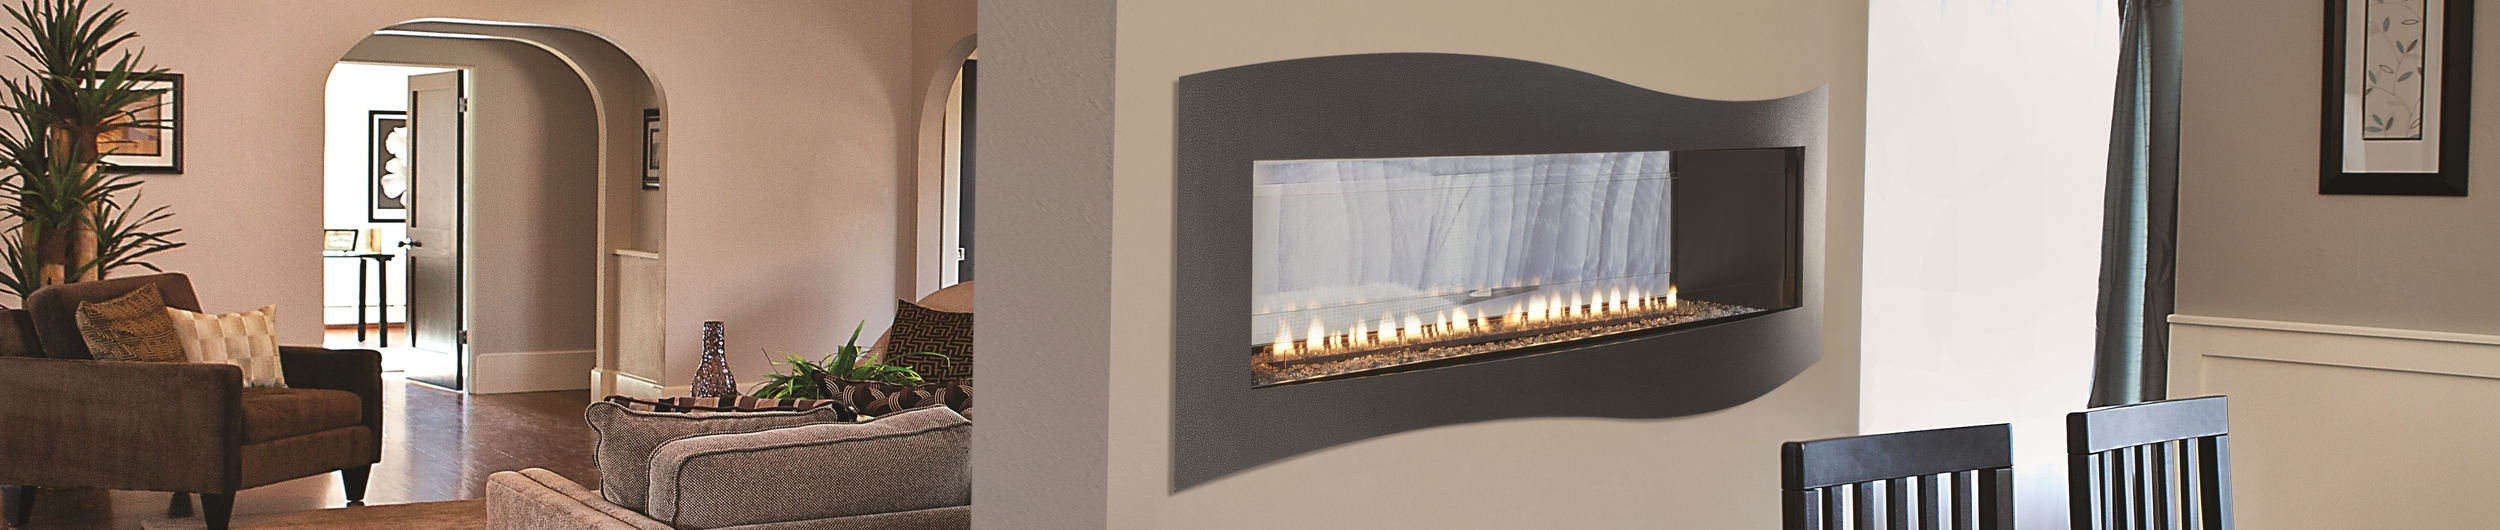 Boulevard See-Thru with Tidal Wave Surround